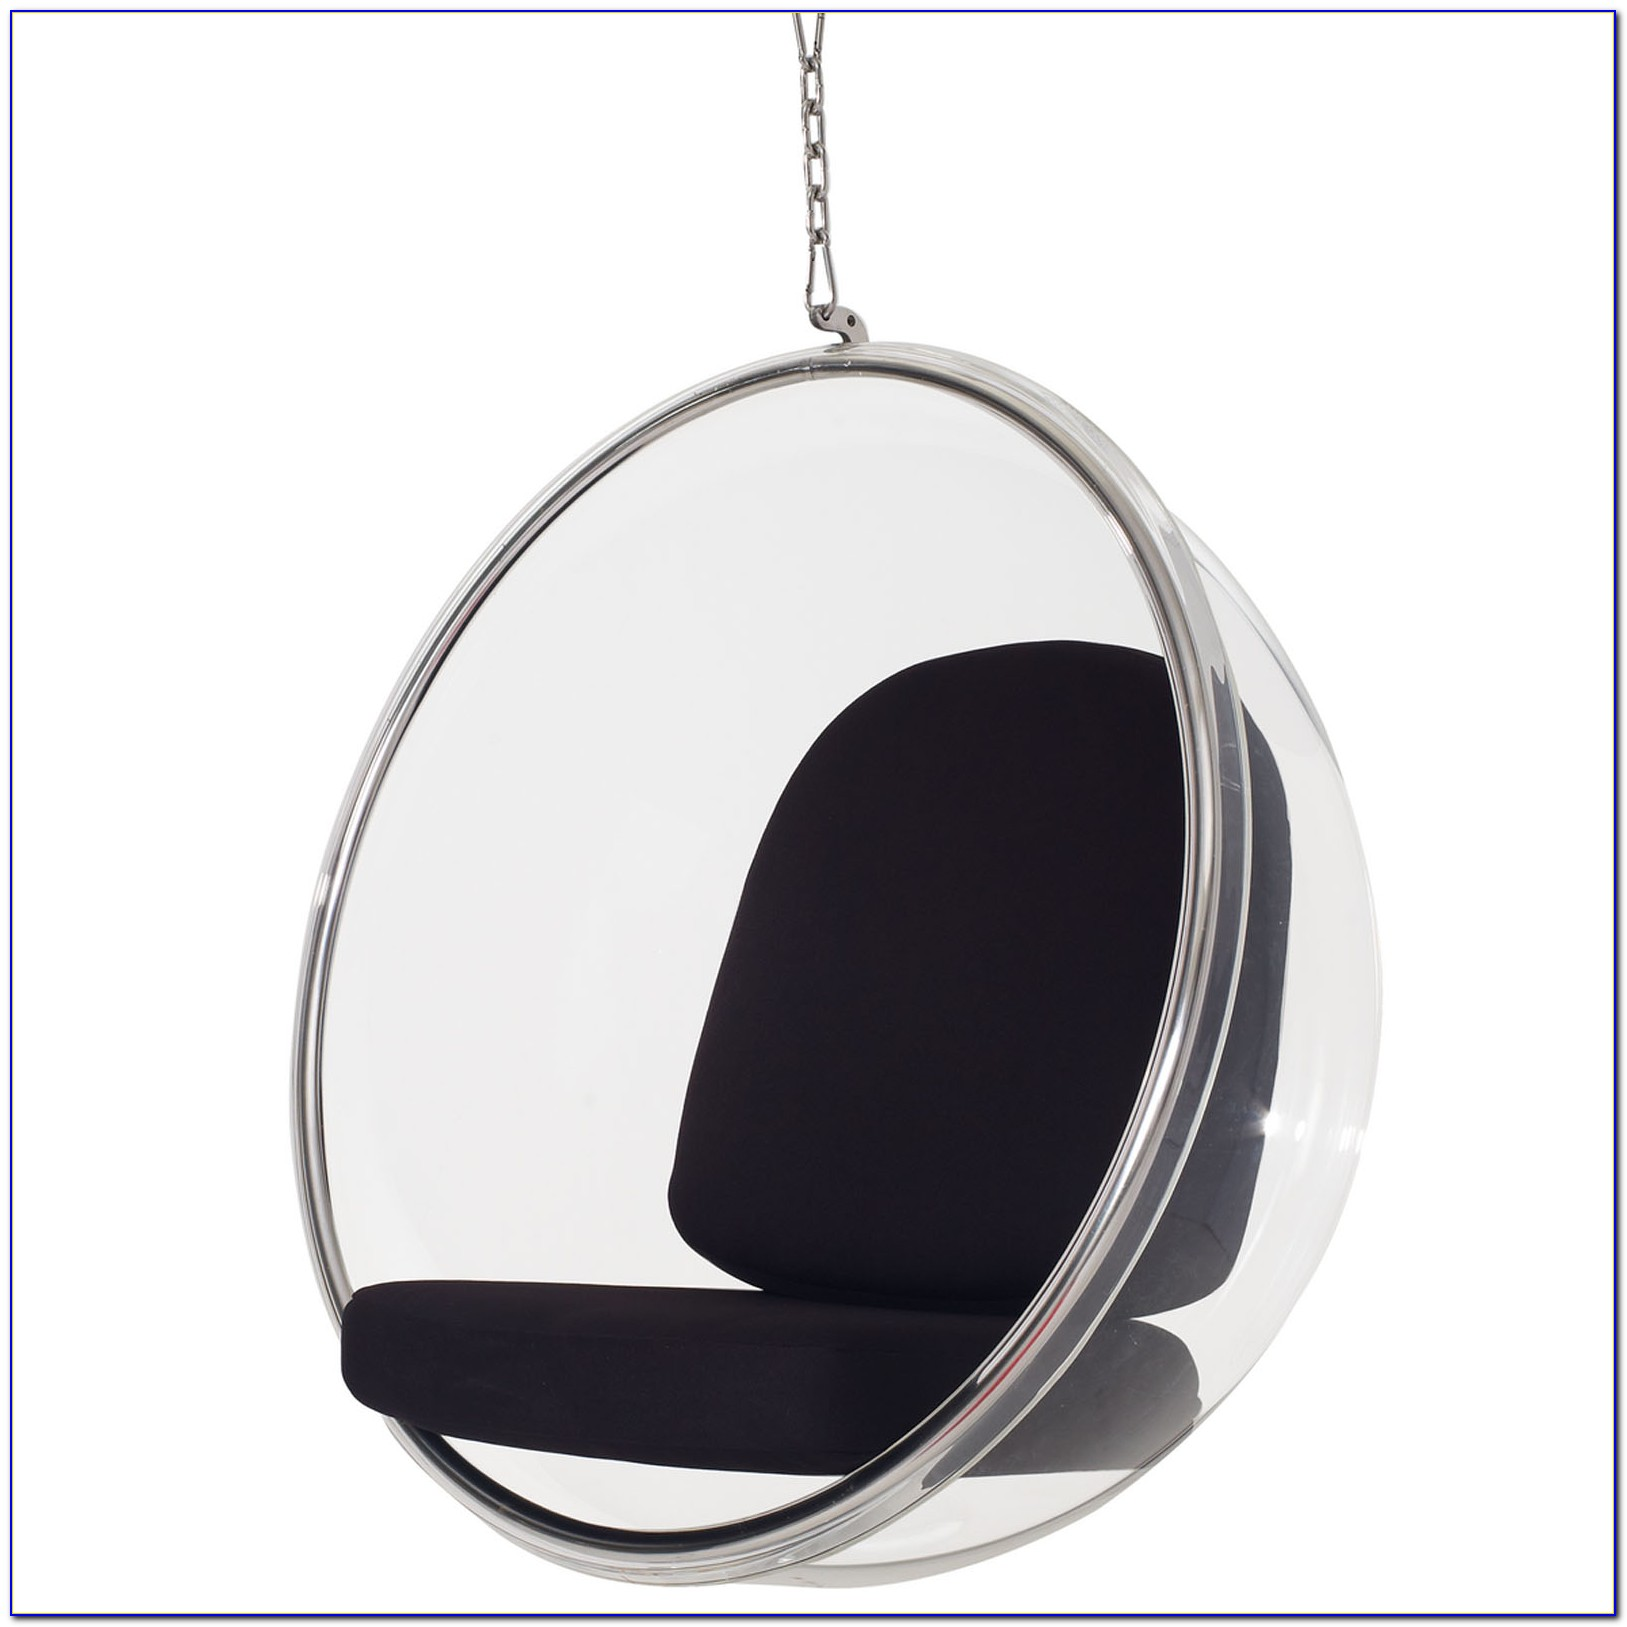 Hanging Bubble Chair Amazon